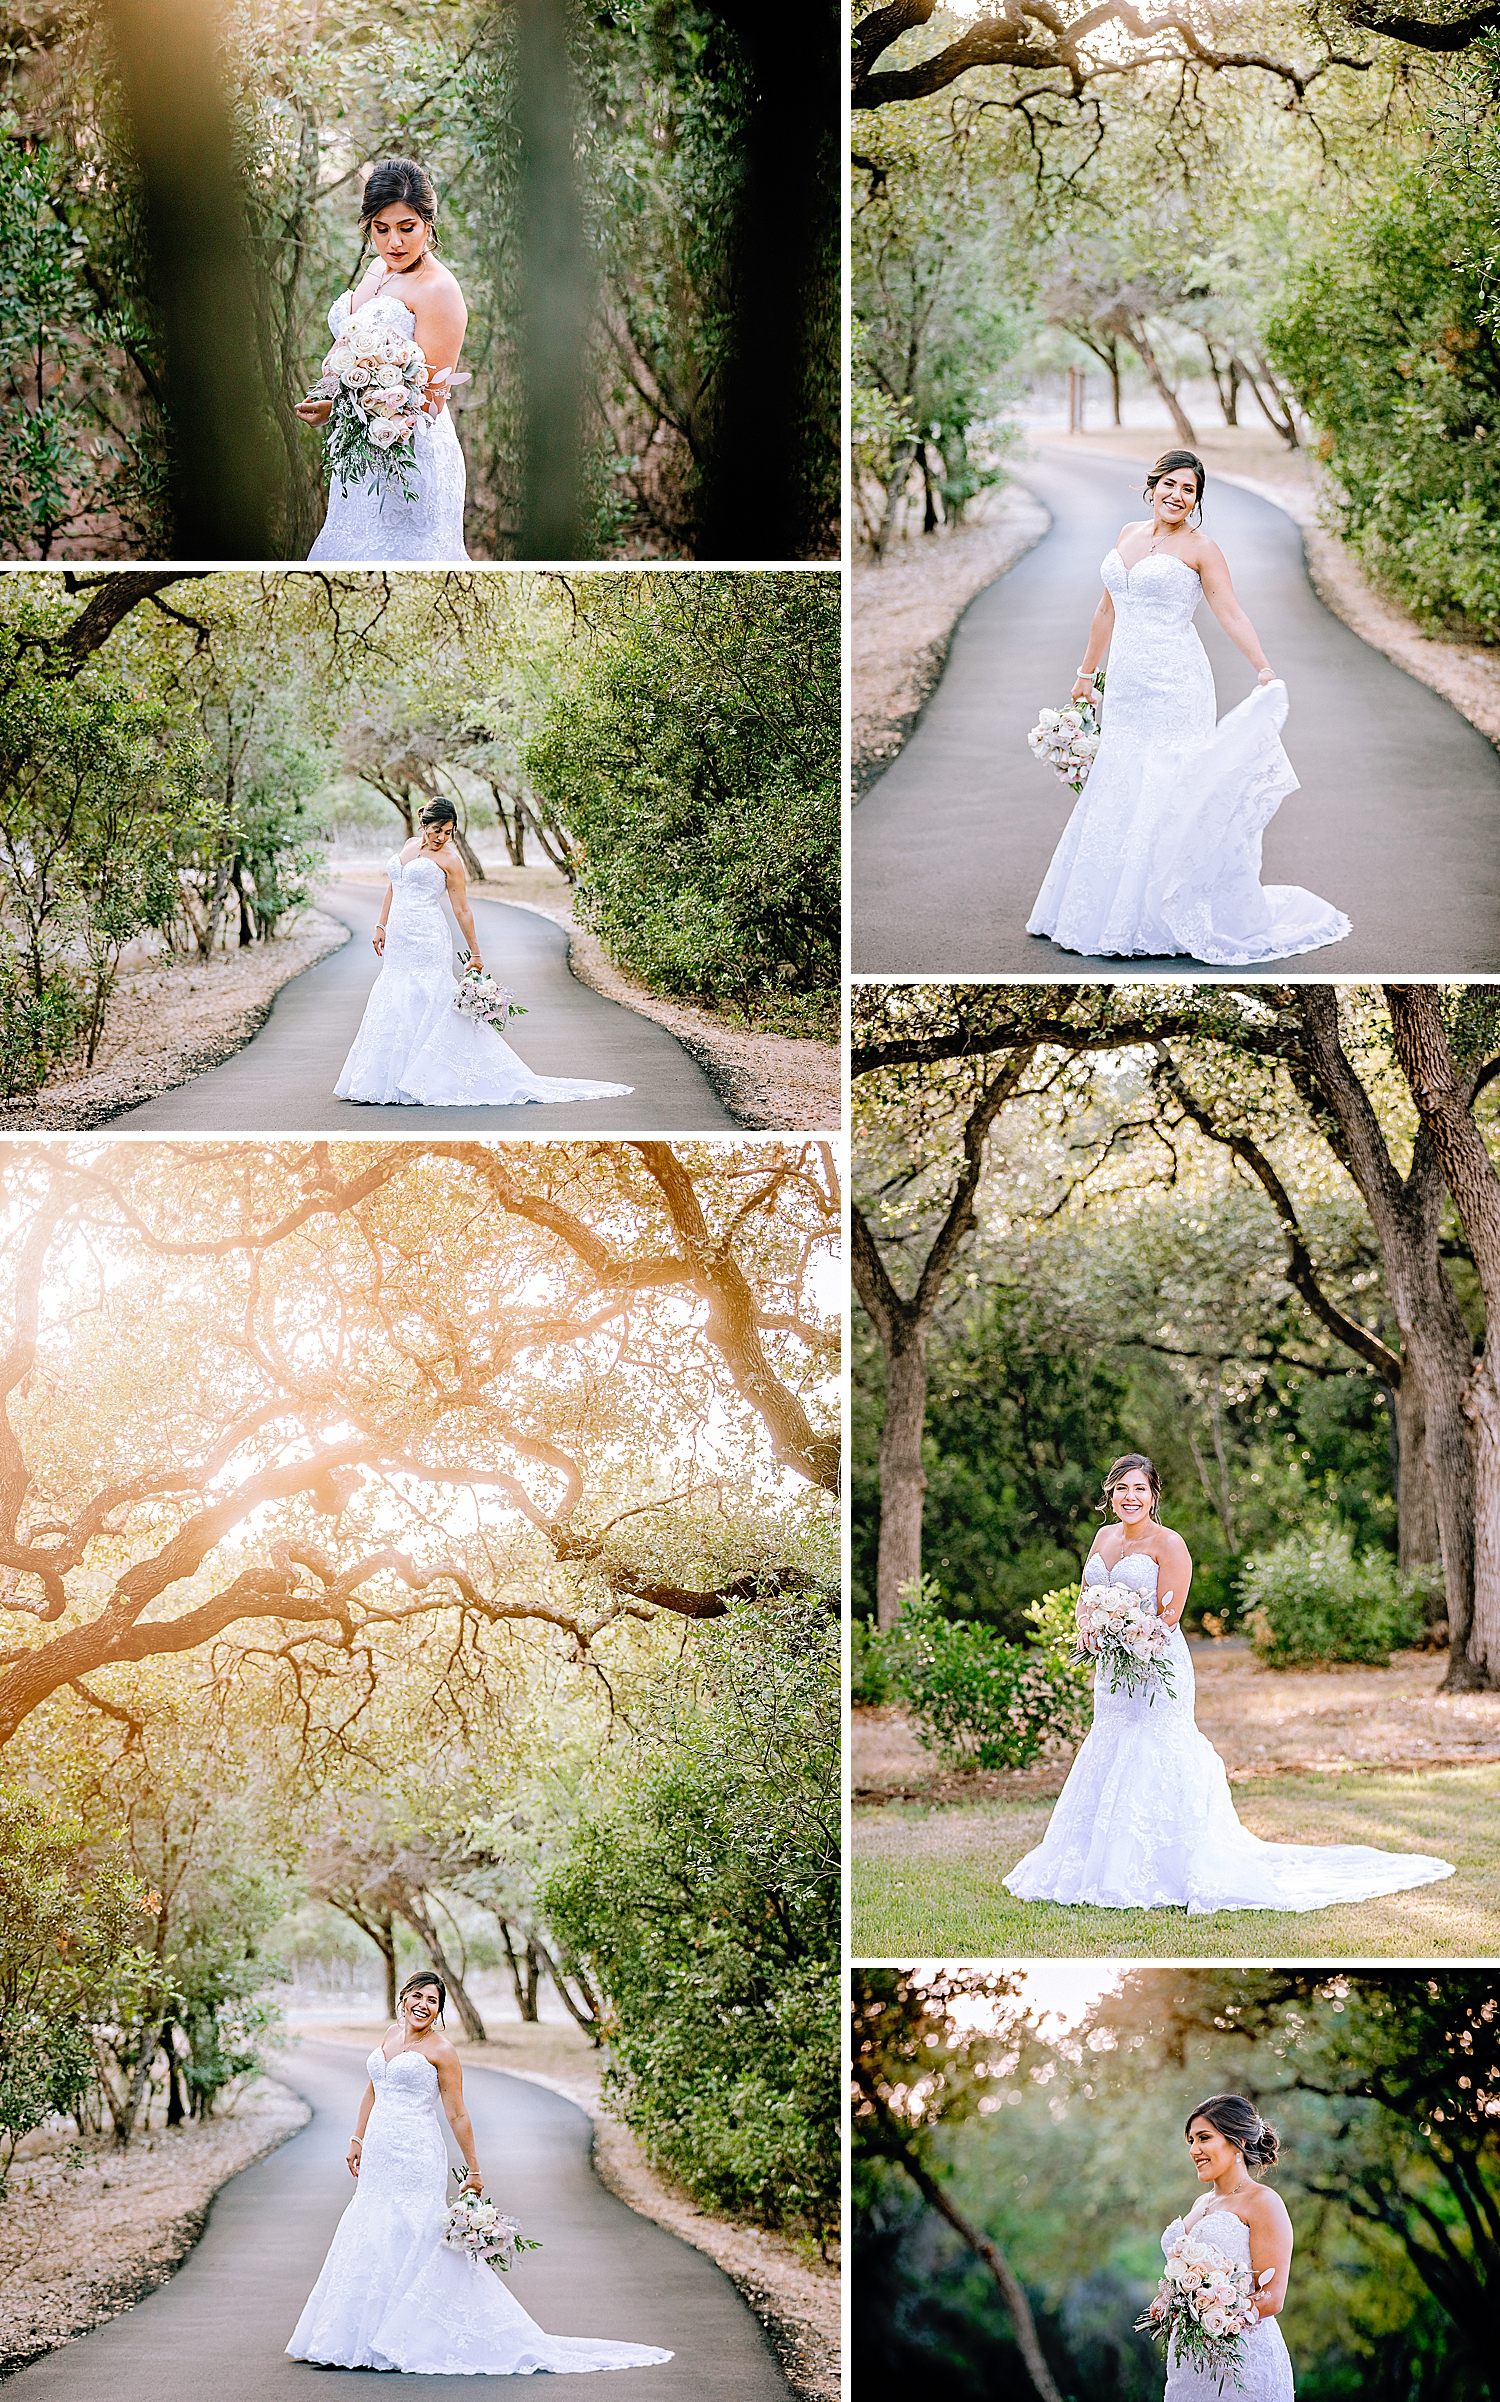 Carly-Barton-Photography-Bridal-Photos-Chadelier-of-Gruene-New-Braunfels-Wedding-Photographer_0024.jpg